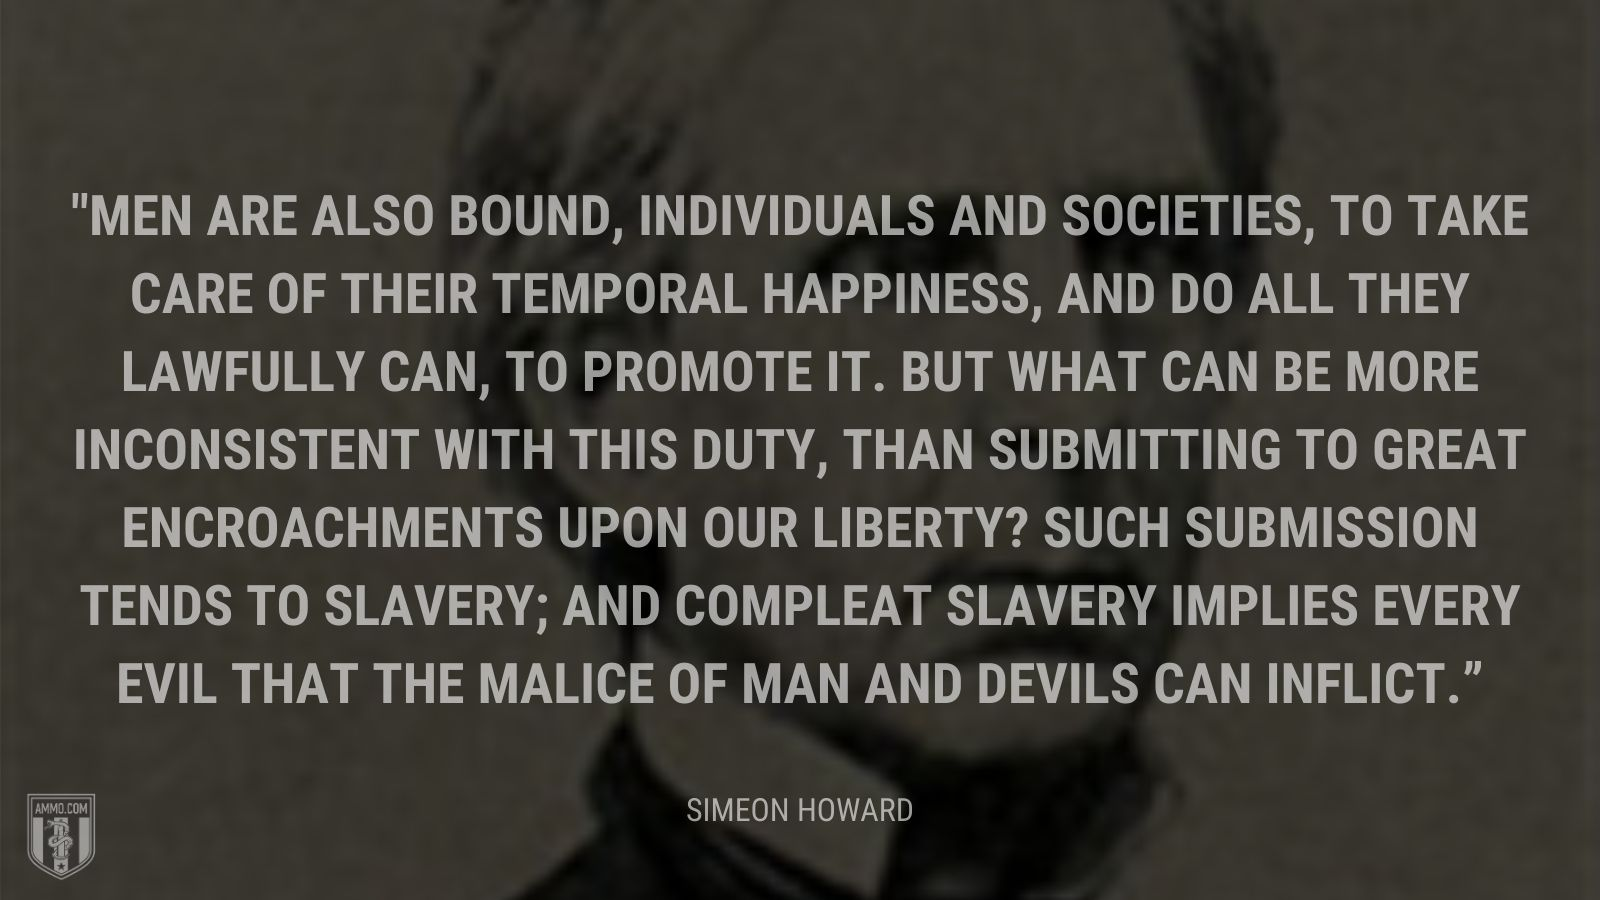 """Men are also bound, individuals and societies, to take care of their temporal happiness, and do all they lawfully can, to promote it. But what can be more inconsistent with this duty, than submitting to great encroachments upon our liberty? Such submission tends to slavery; and compleat slavery implies every evil that the malice of man and devils can inflict."" - Simeon Howard"